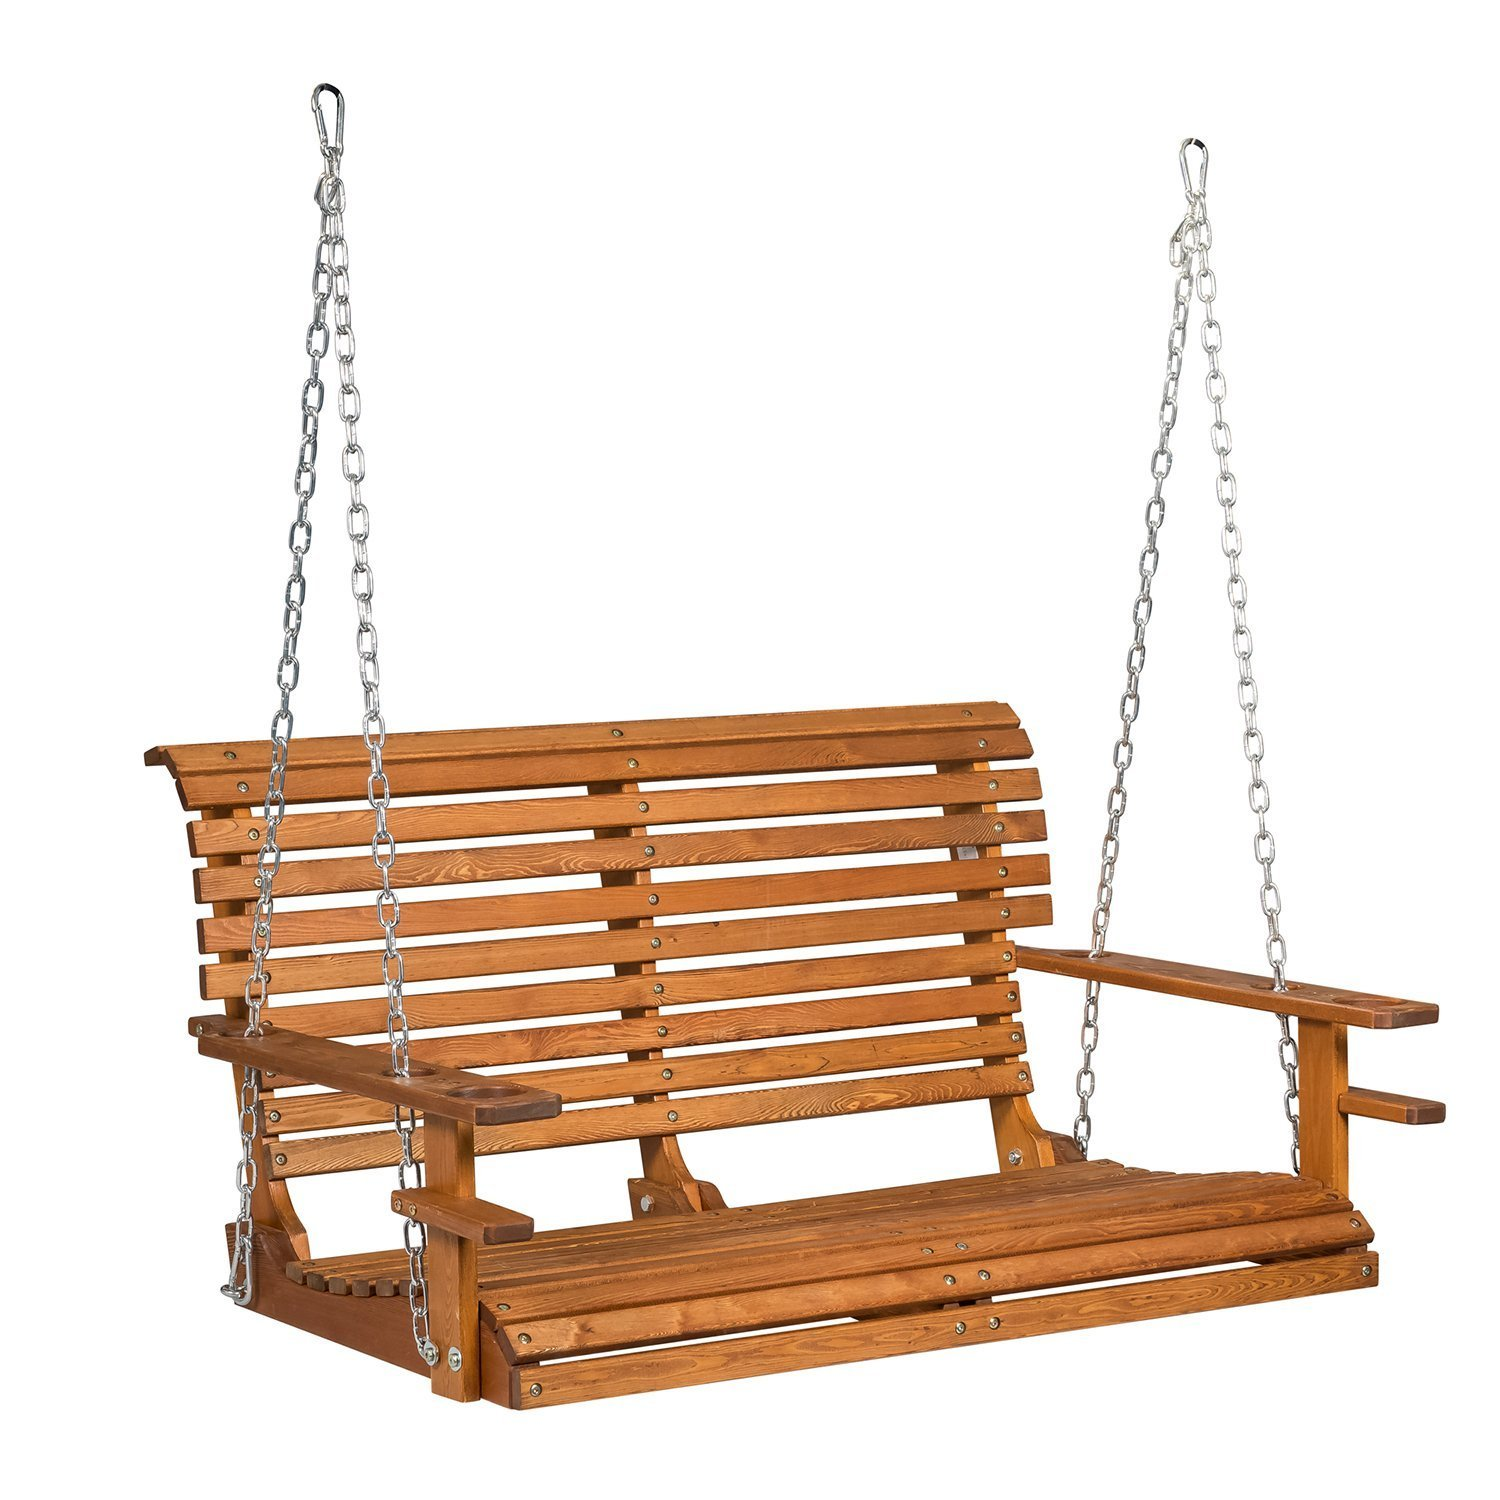 Buy-Hive 4ft Porch Swing Wood Patio Swing Chair Hanging Bench Deck Courtyard w Cup Holder by